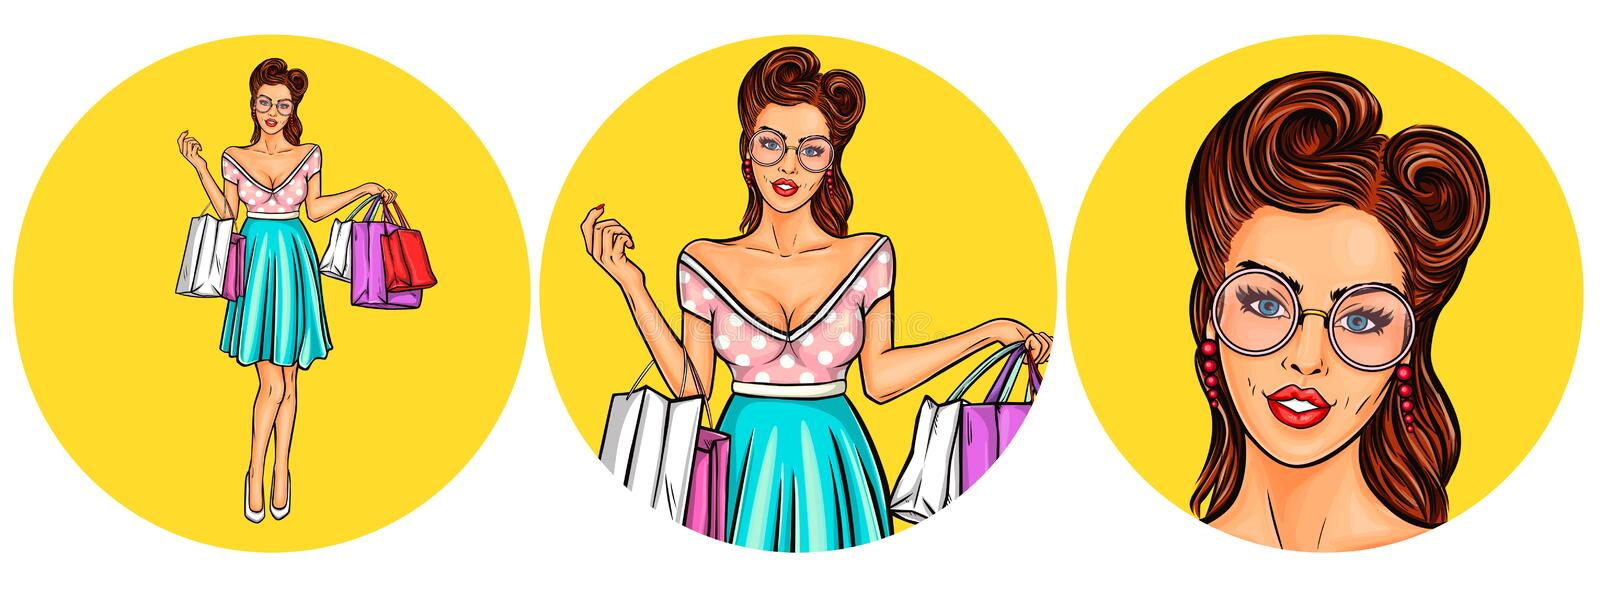 Set of vector illustration, womens pop art round avatars icons. For users of social networking, blogs. Girl keeps shopping bags stock illustration